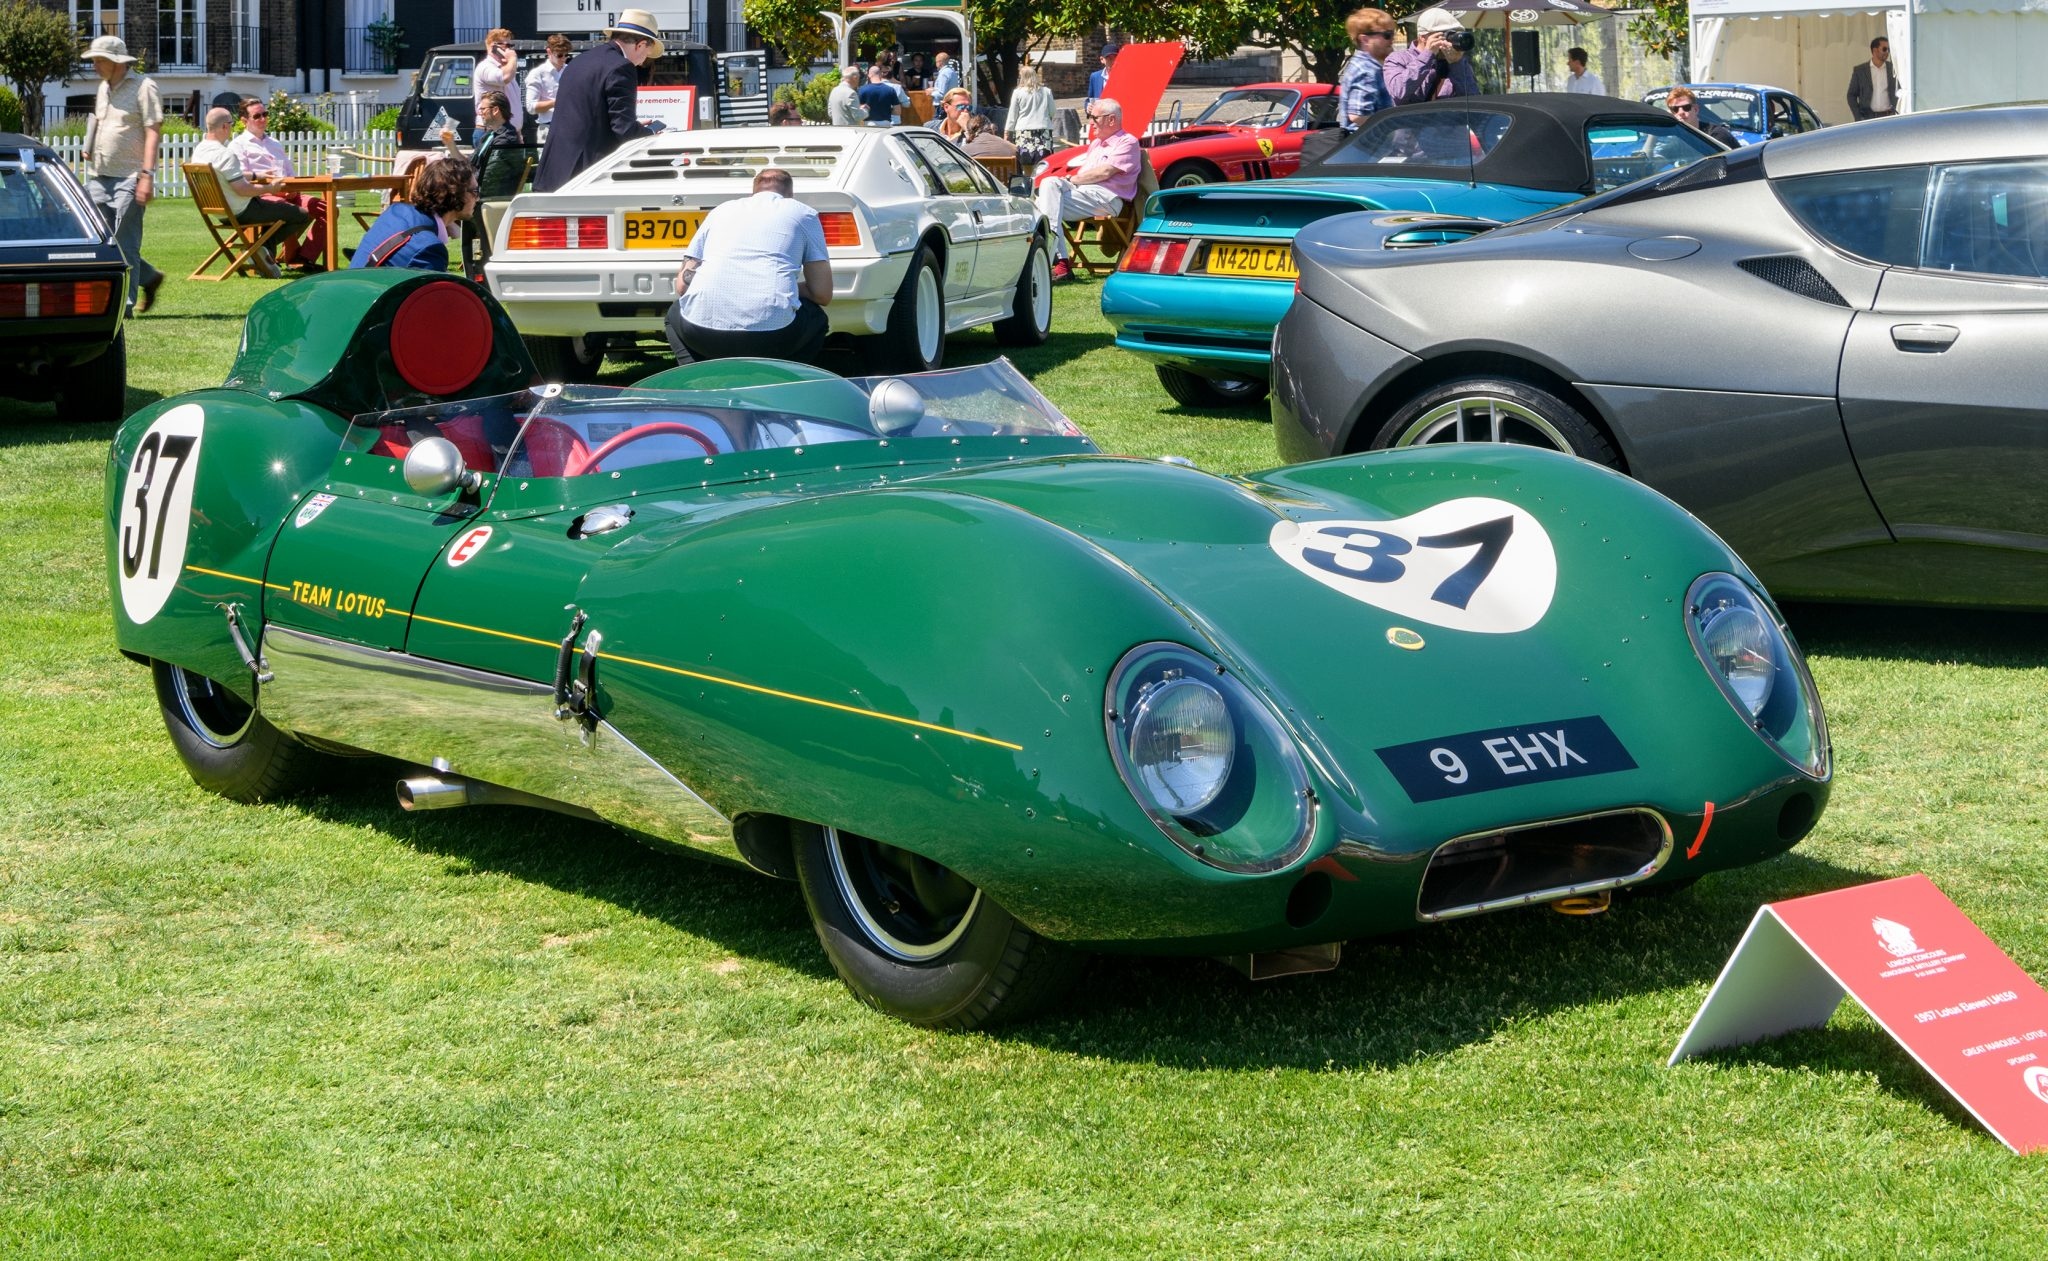 Lotus Eleven LM50 Wins Best In Show At London Concours